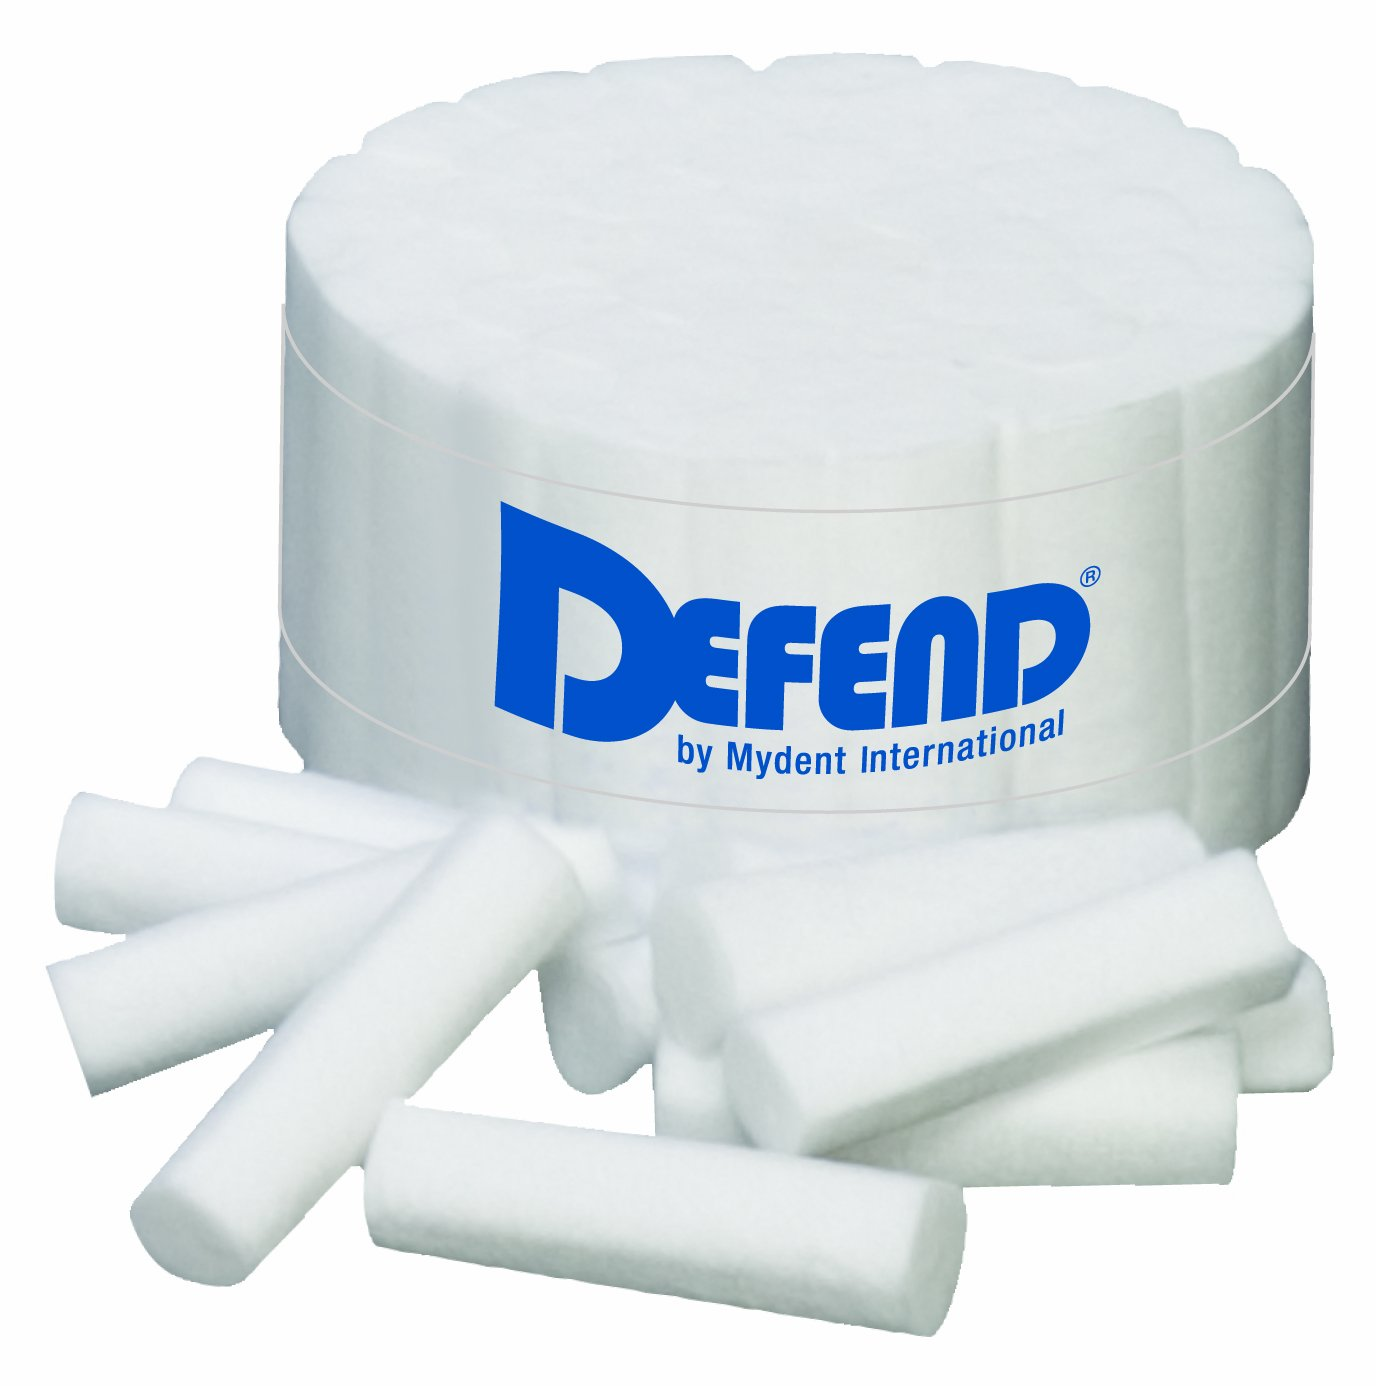 2000 Defend Disposable Dental Cotton Rolls non-sterile soft pliable non-linting